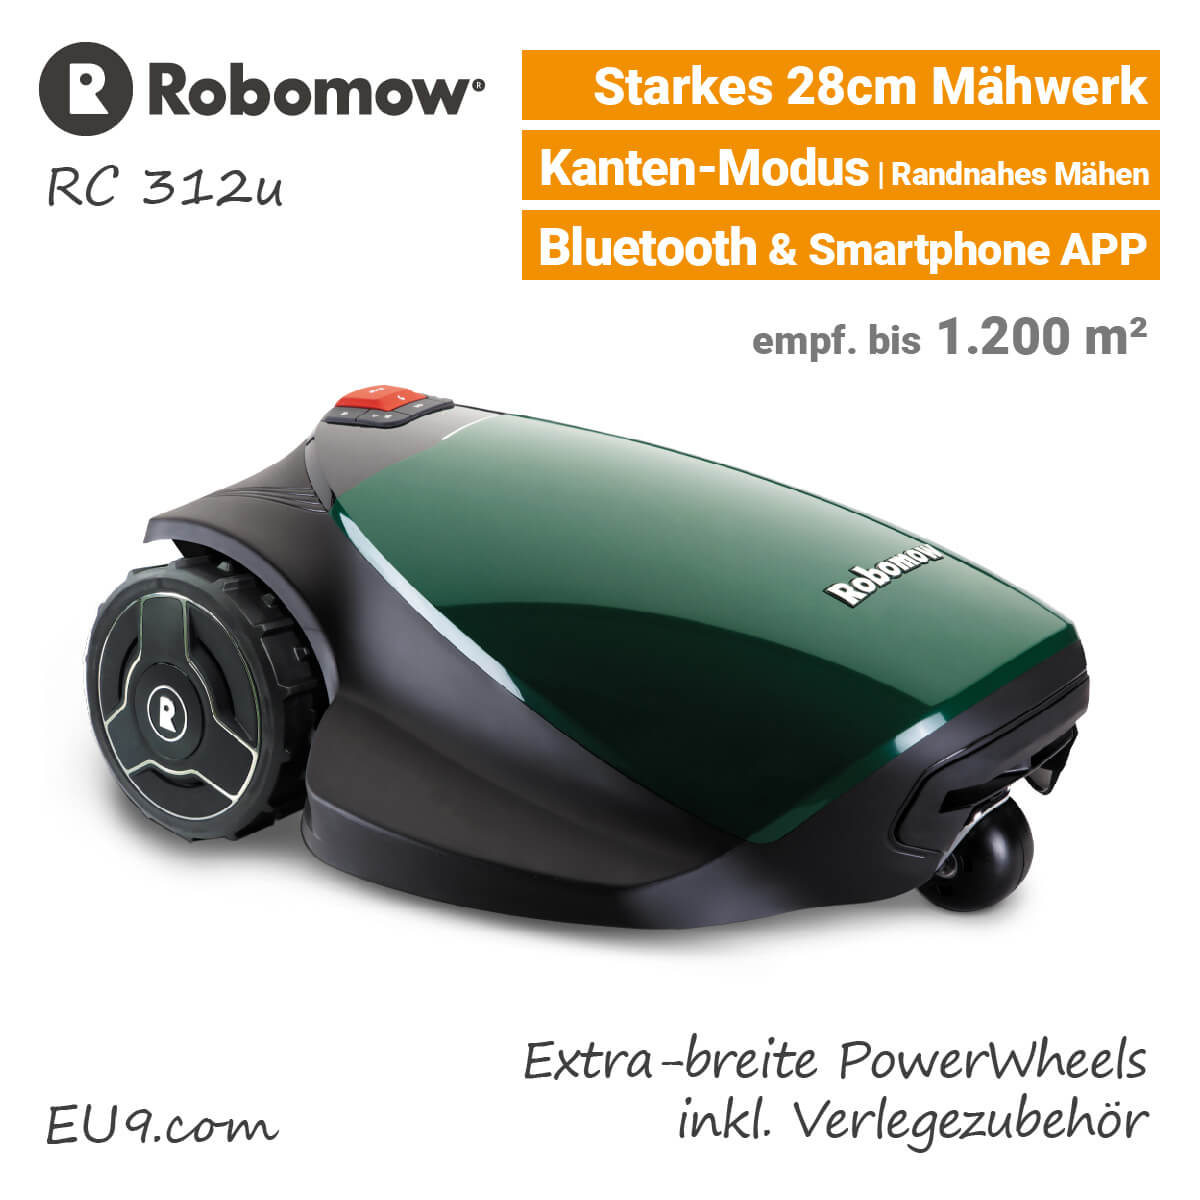 robomow rc 312 pro s rasenroboter mit robohome g nstig kaufen. Black Bedroom Furniture Sets. Home Design Ideas